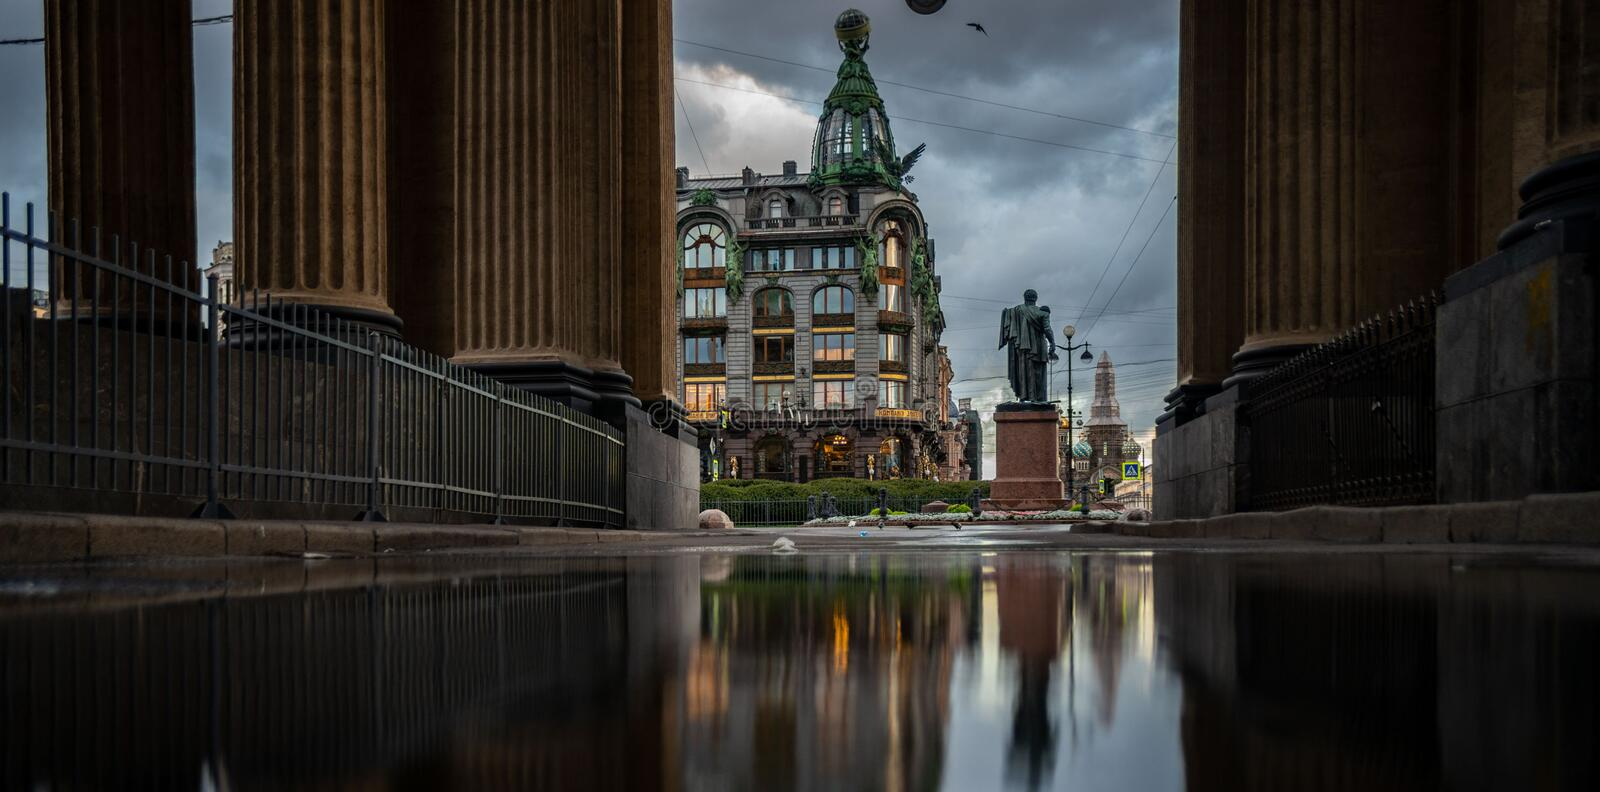 Reflection Griboedov Canal Embankment, St. Petersburg Russia stock photos